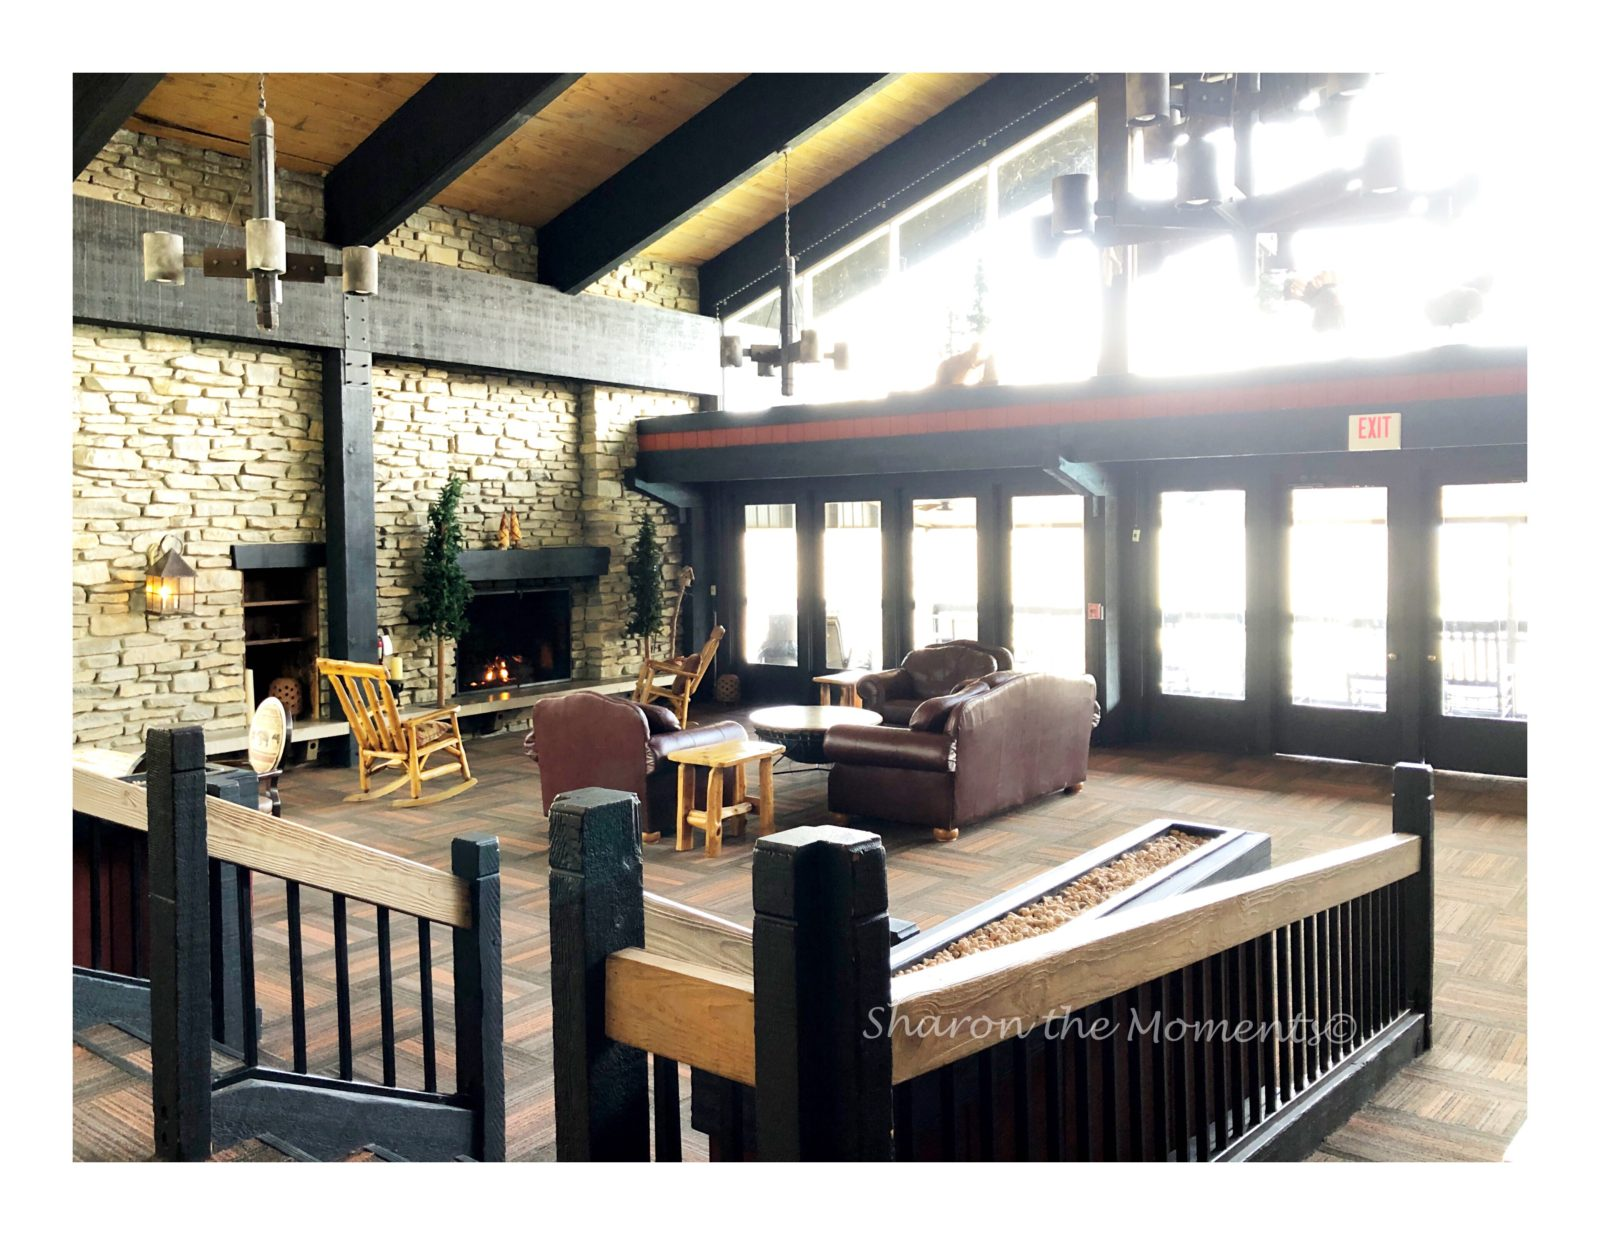 Shawnee State Park & Lodge ||  Sharon the Moments Blog